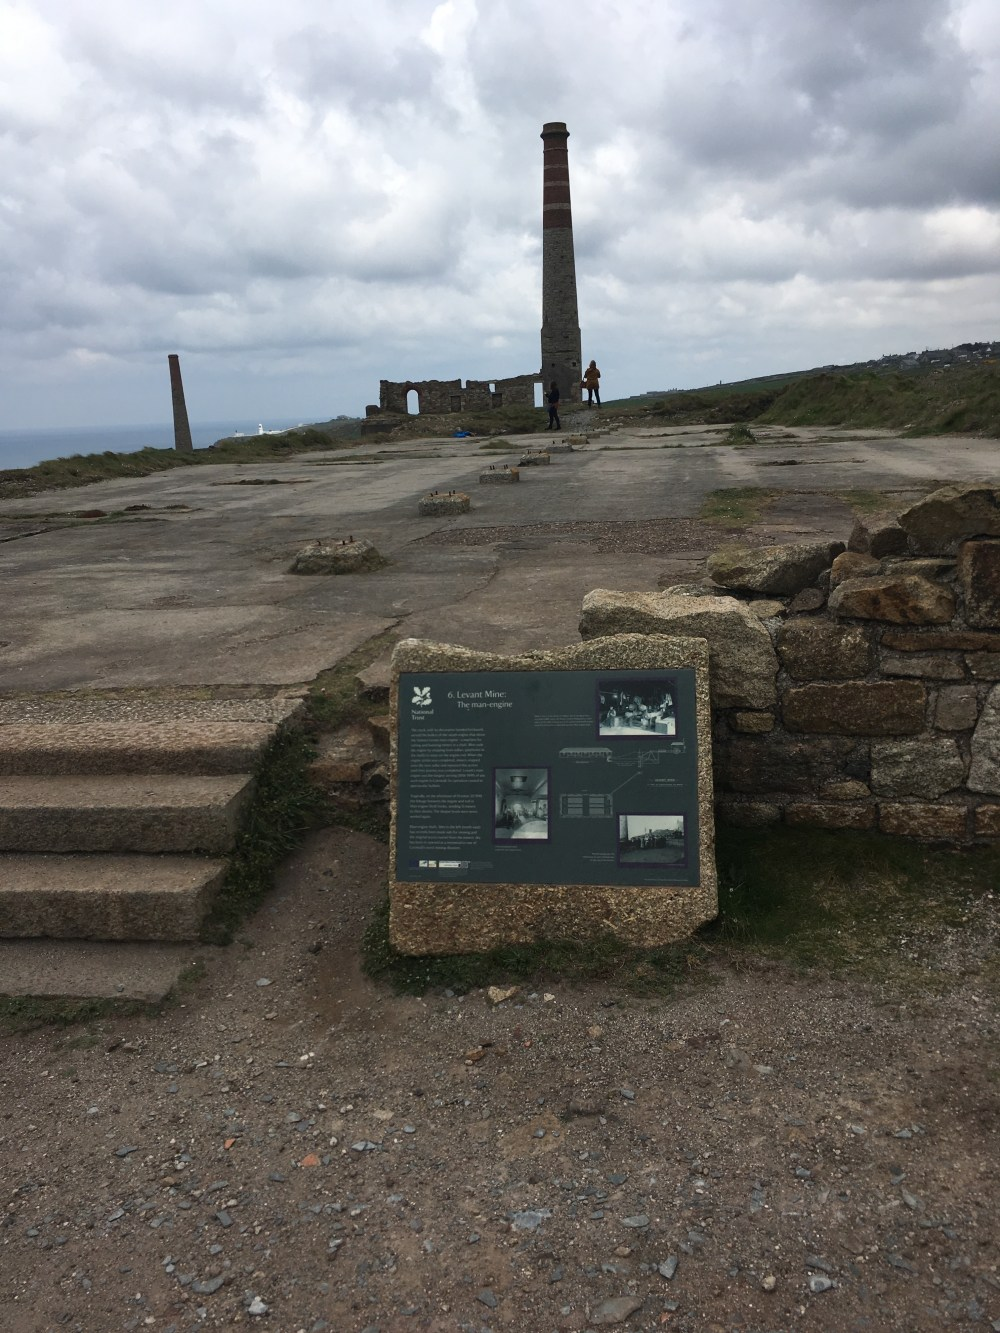 Levant Mine, 2 miles from Pendeen Watch (LEJoG Day 1)